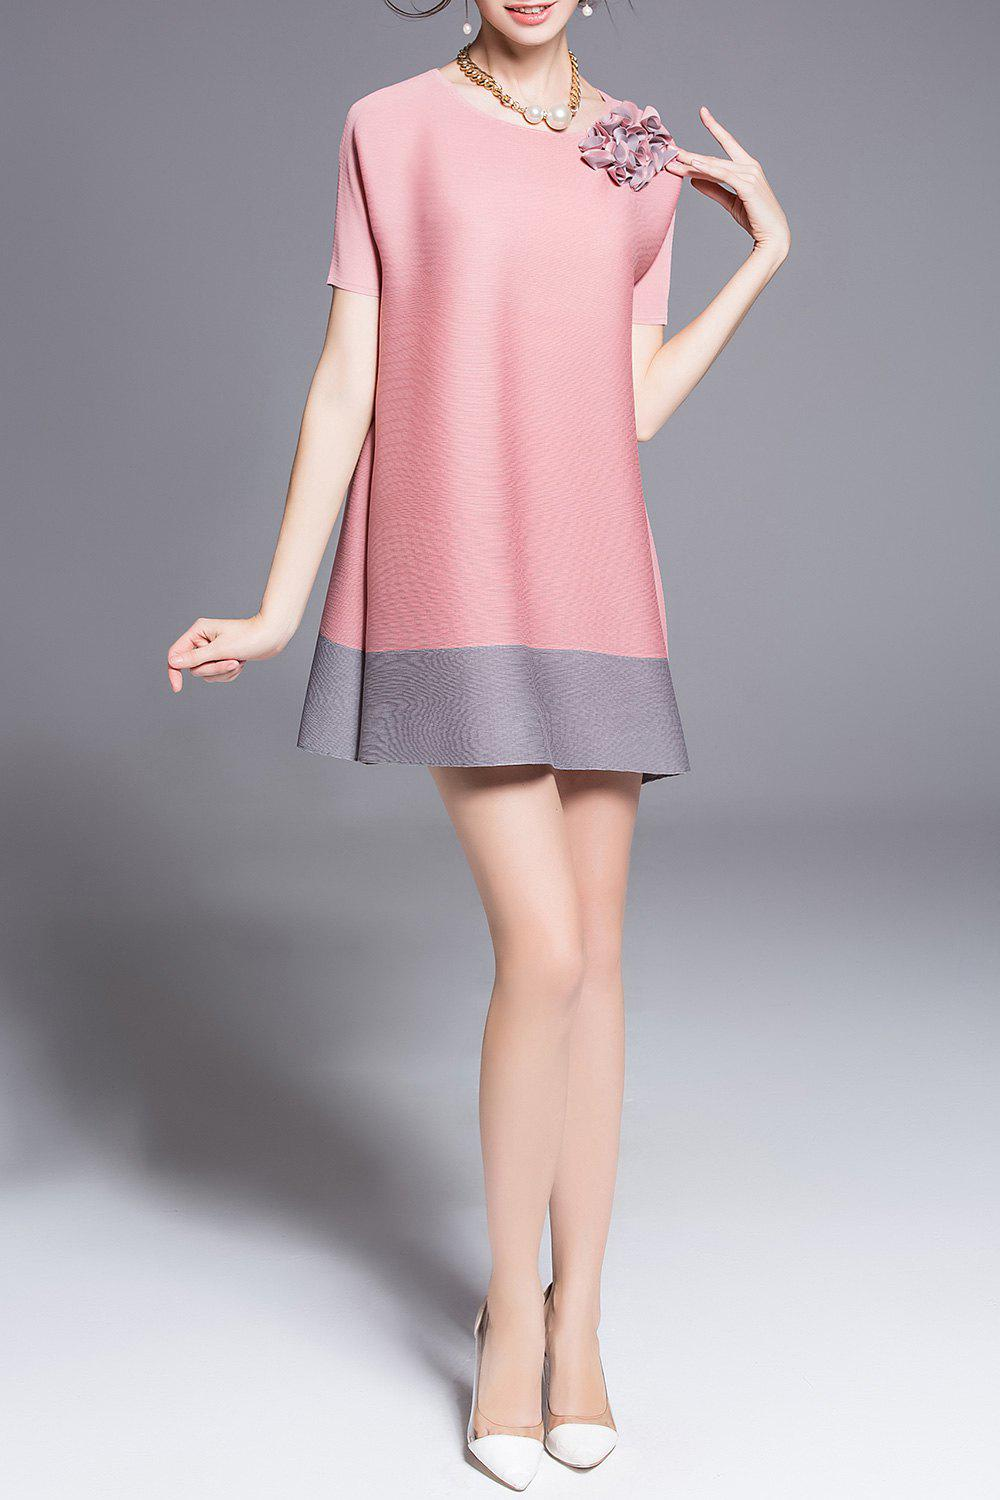 Stereo Floral Color Block Mini Dress - PINK ONE SIZE